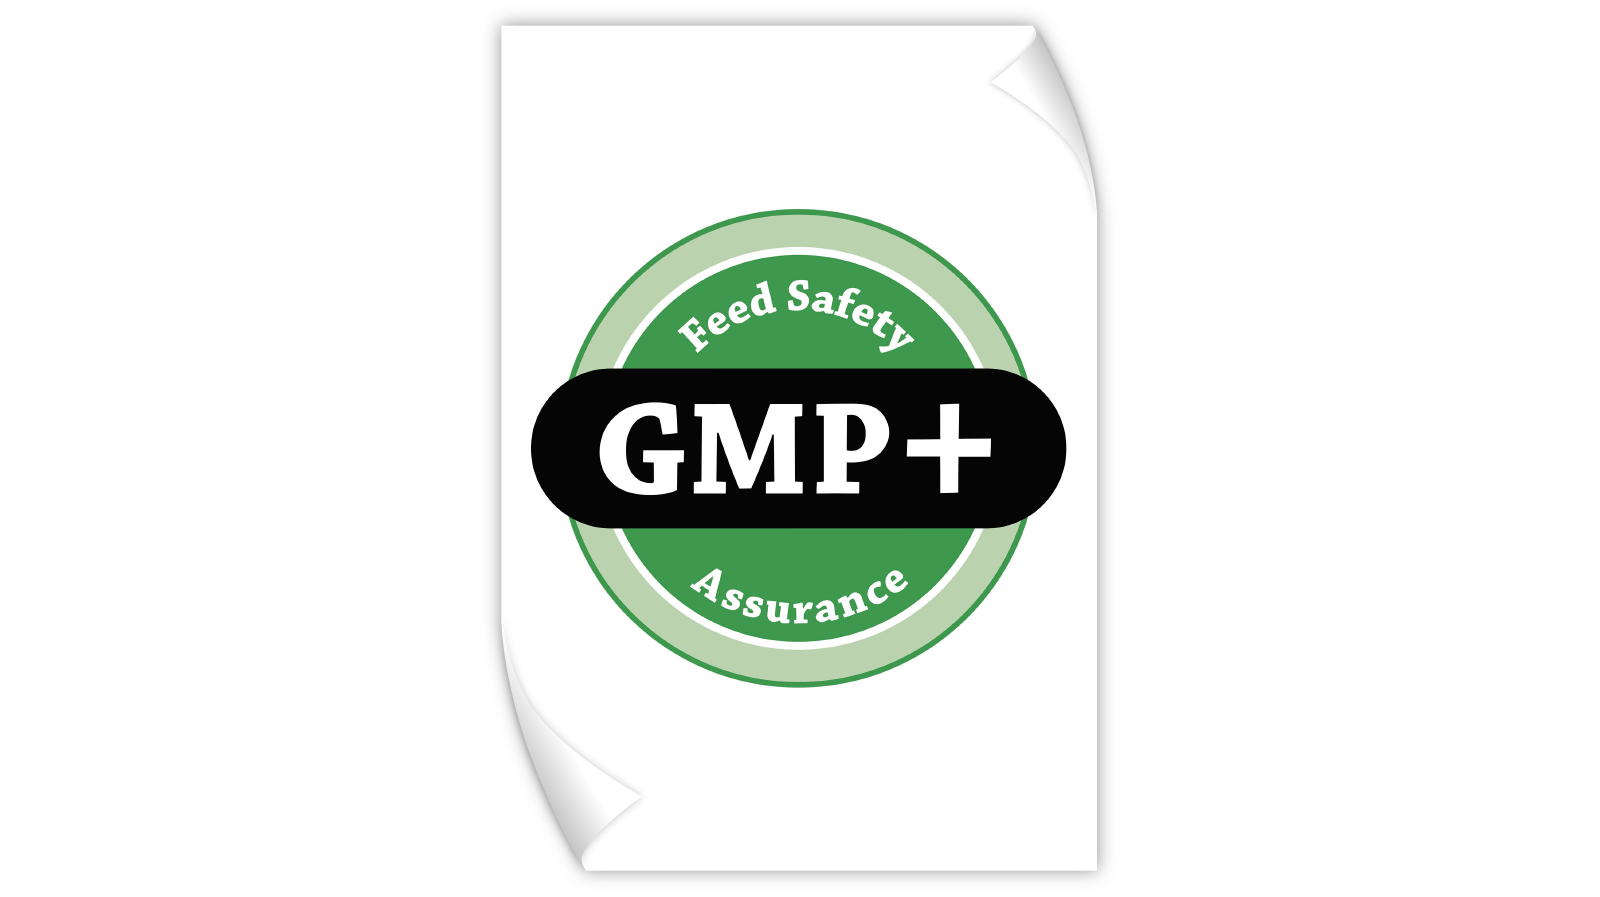 Feed Safety Assurance GMP+